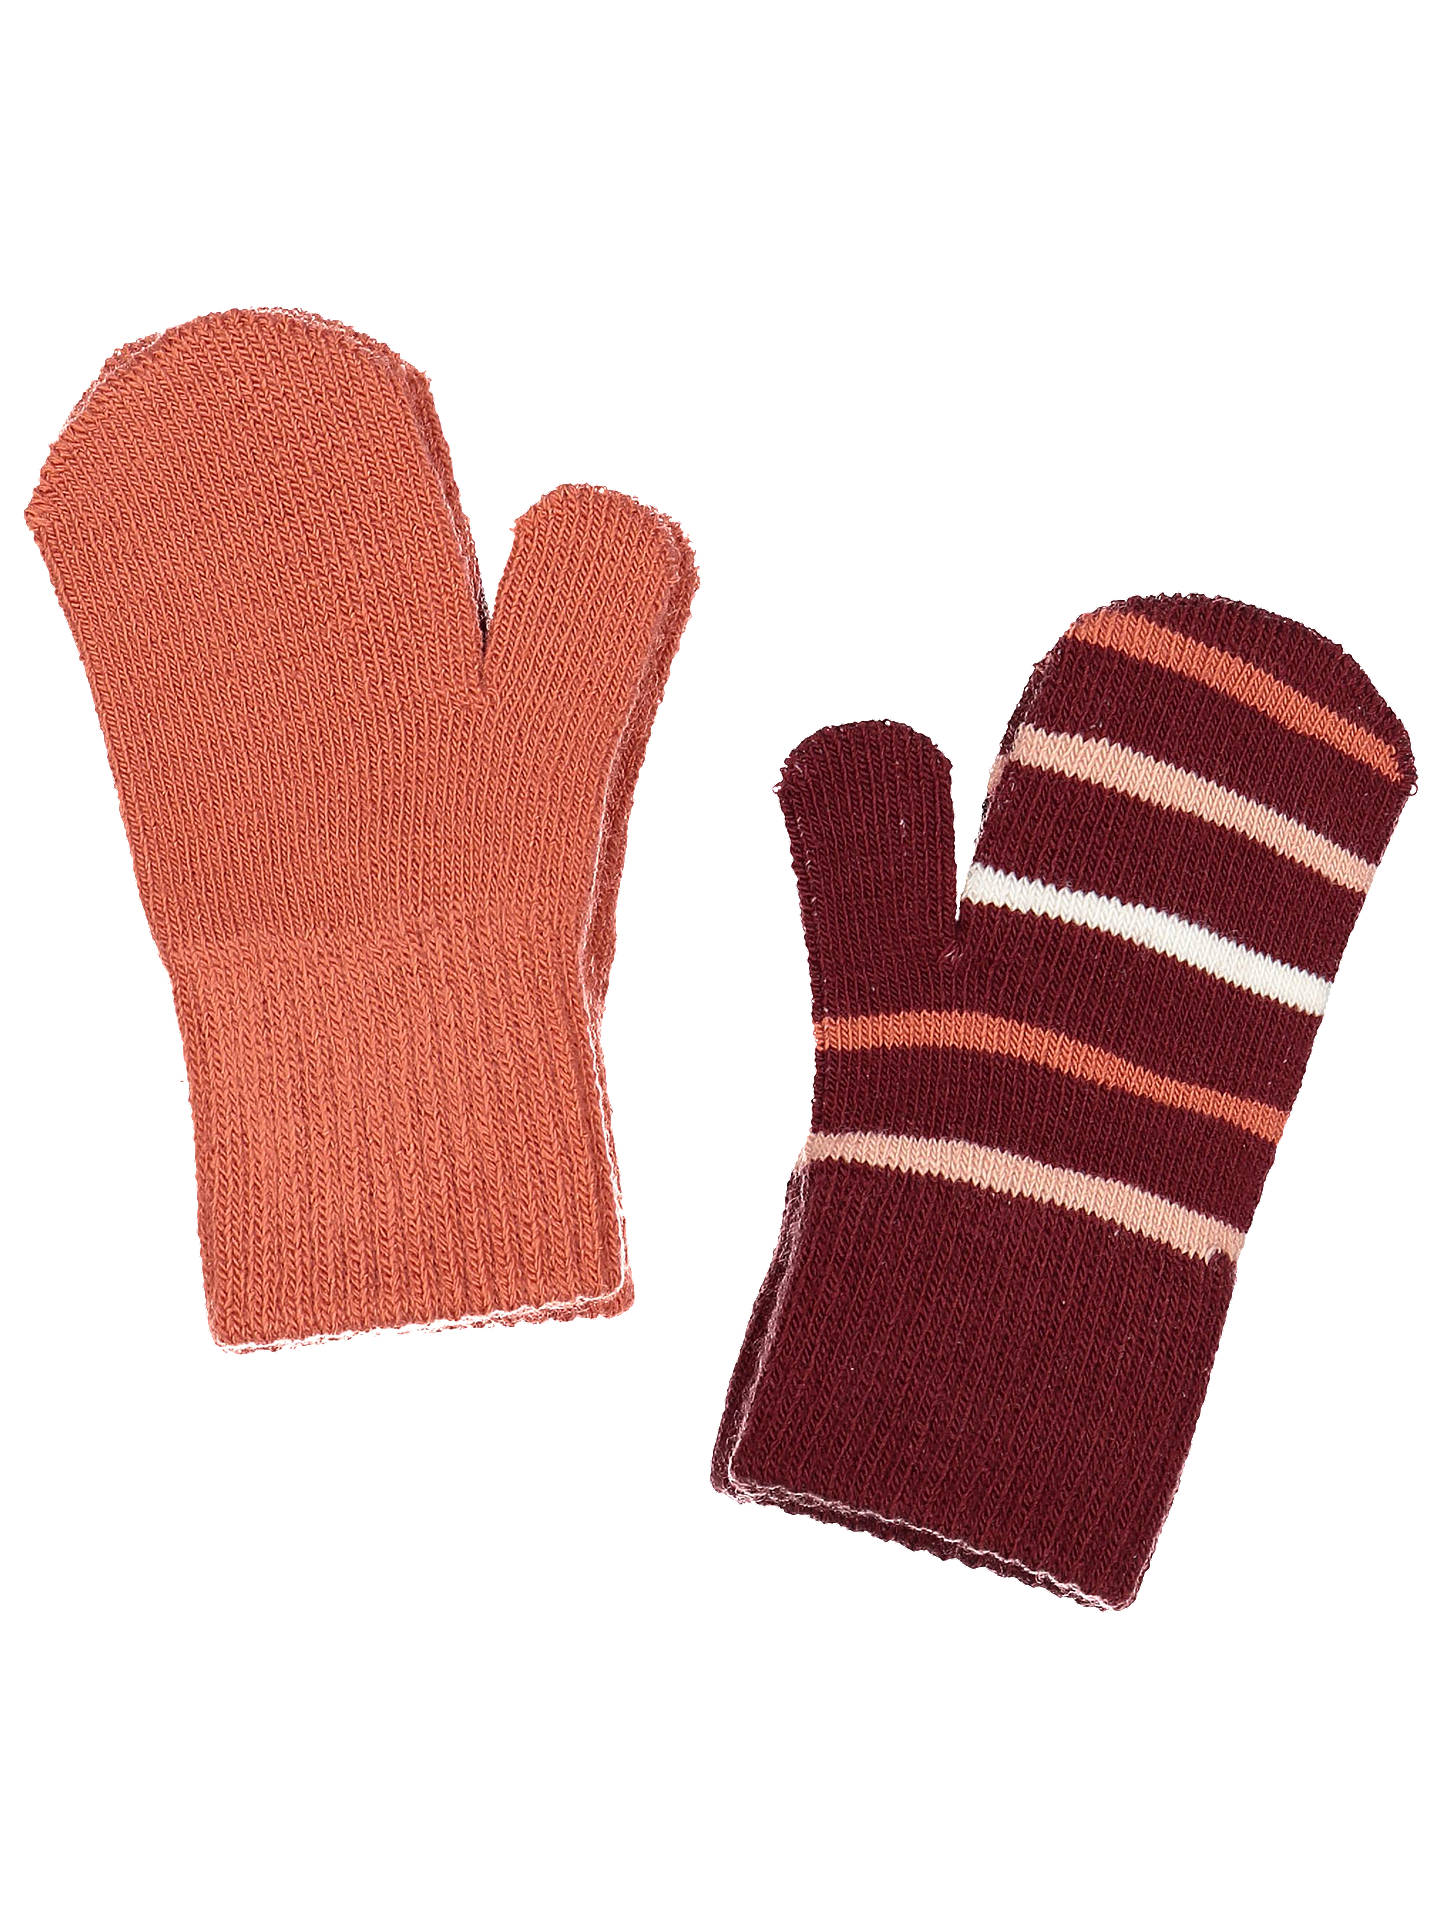 BuyPolarn O. Pyret Baby Magic Mittens, Red, 6 months- 4 years Online at johnlewis.com